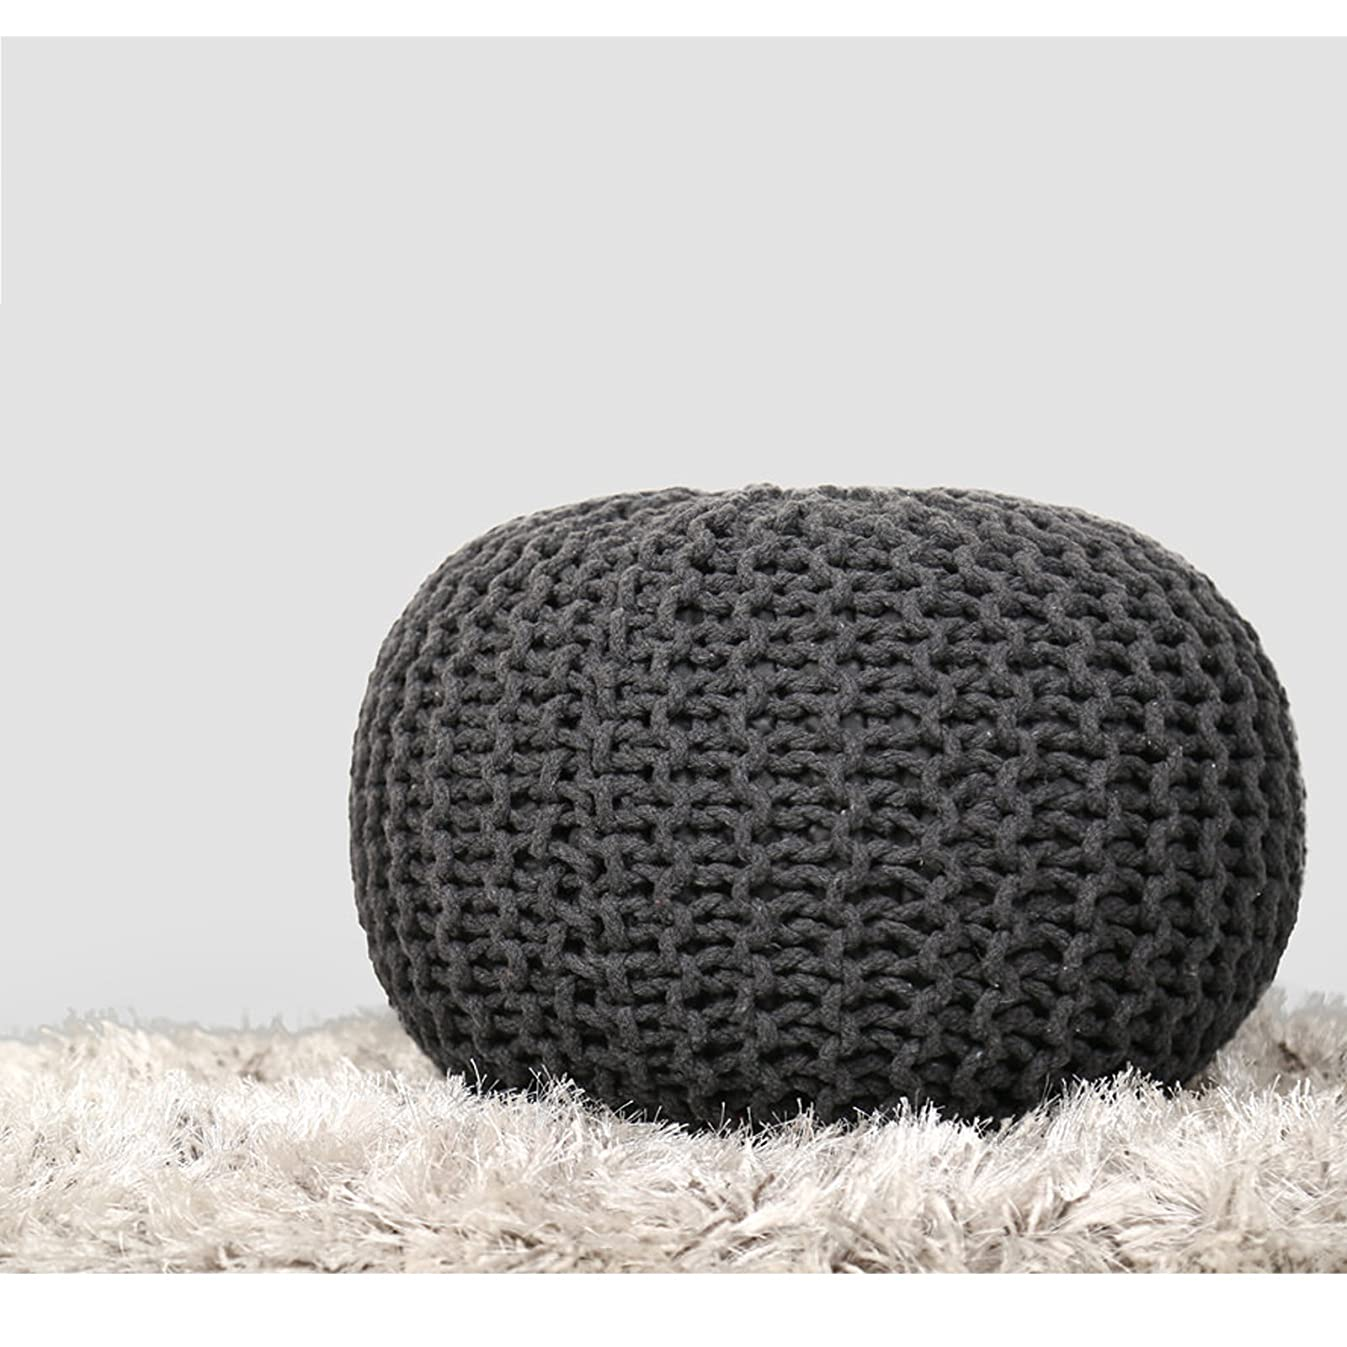 RAJRANG BRINGING RAJASTHAN TO YOU Charcoal Grey Hand Knit Pure Cotton Stuffed Pouf Braid Cord Stitched Round Foot Home Decorative Perfect Patio Seating, 19x13,